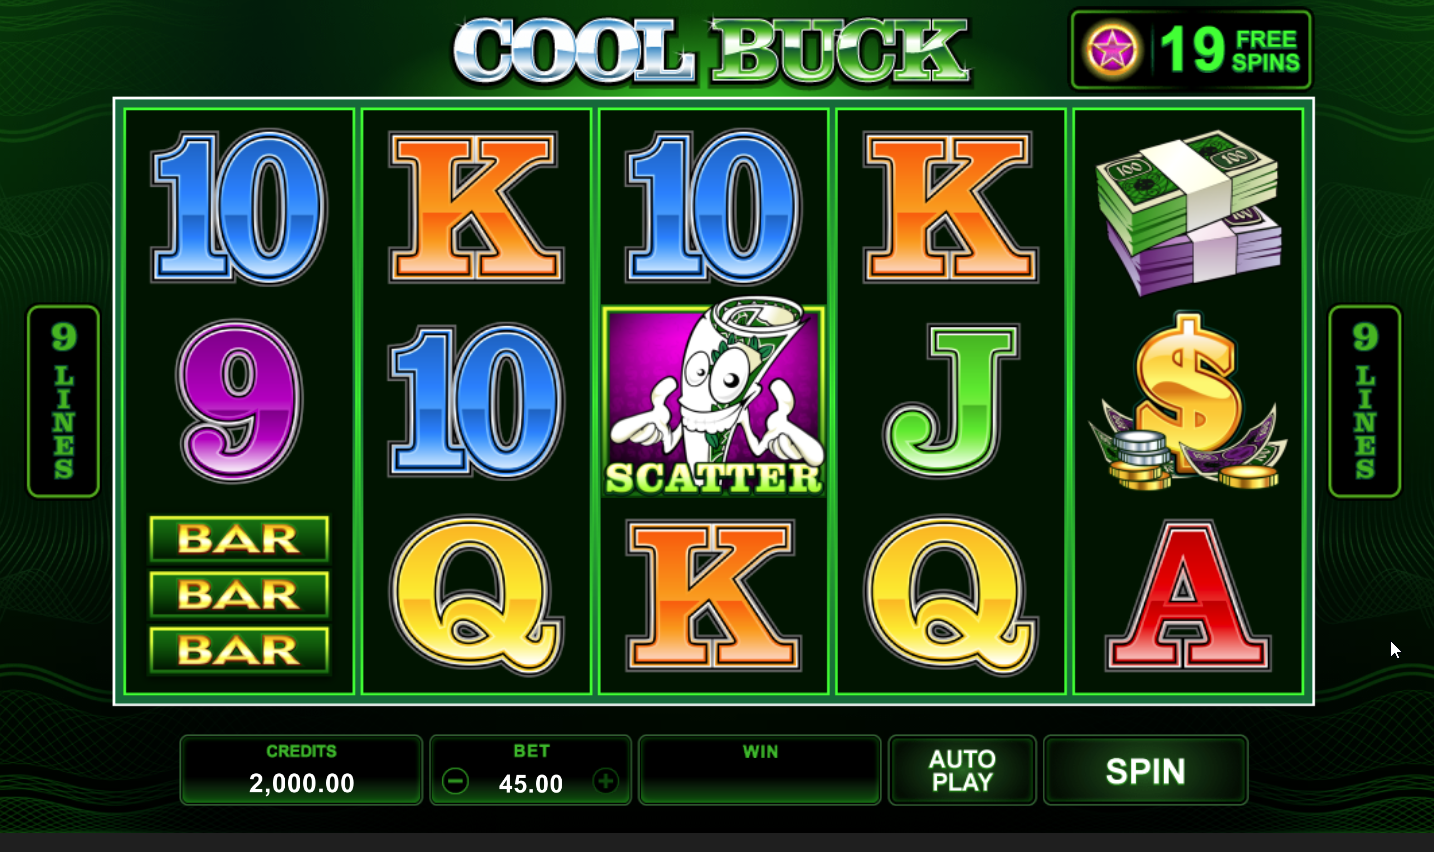 Cool Buck 5 Slots Game Review